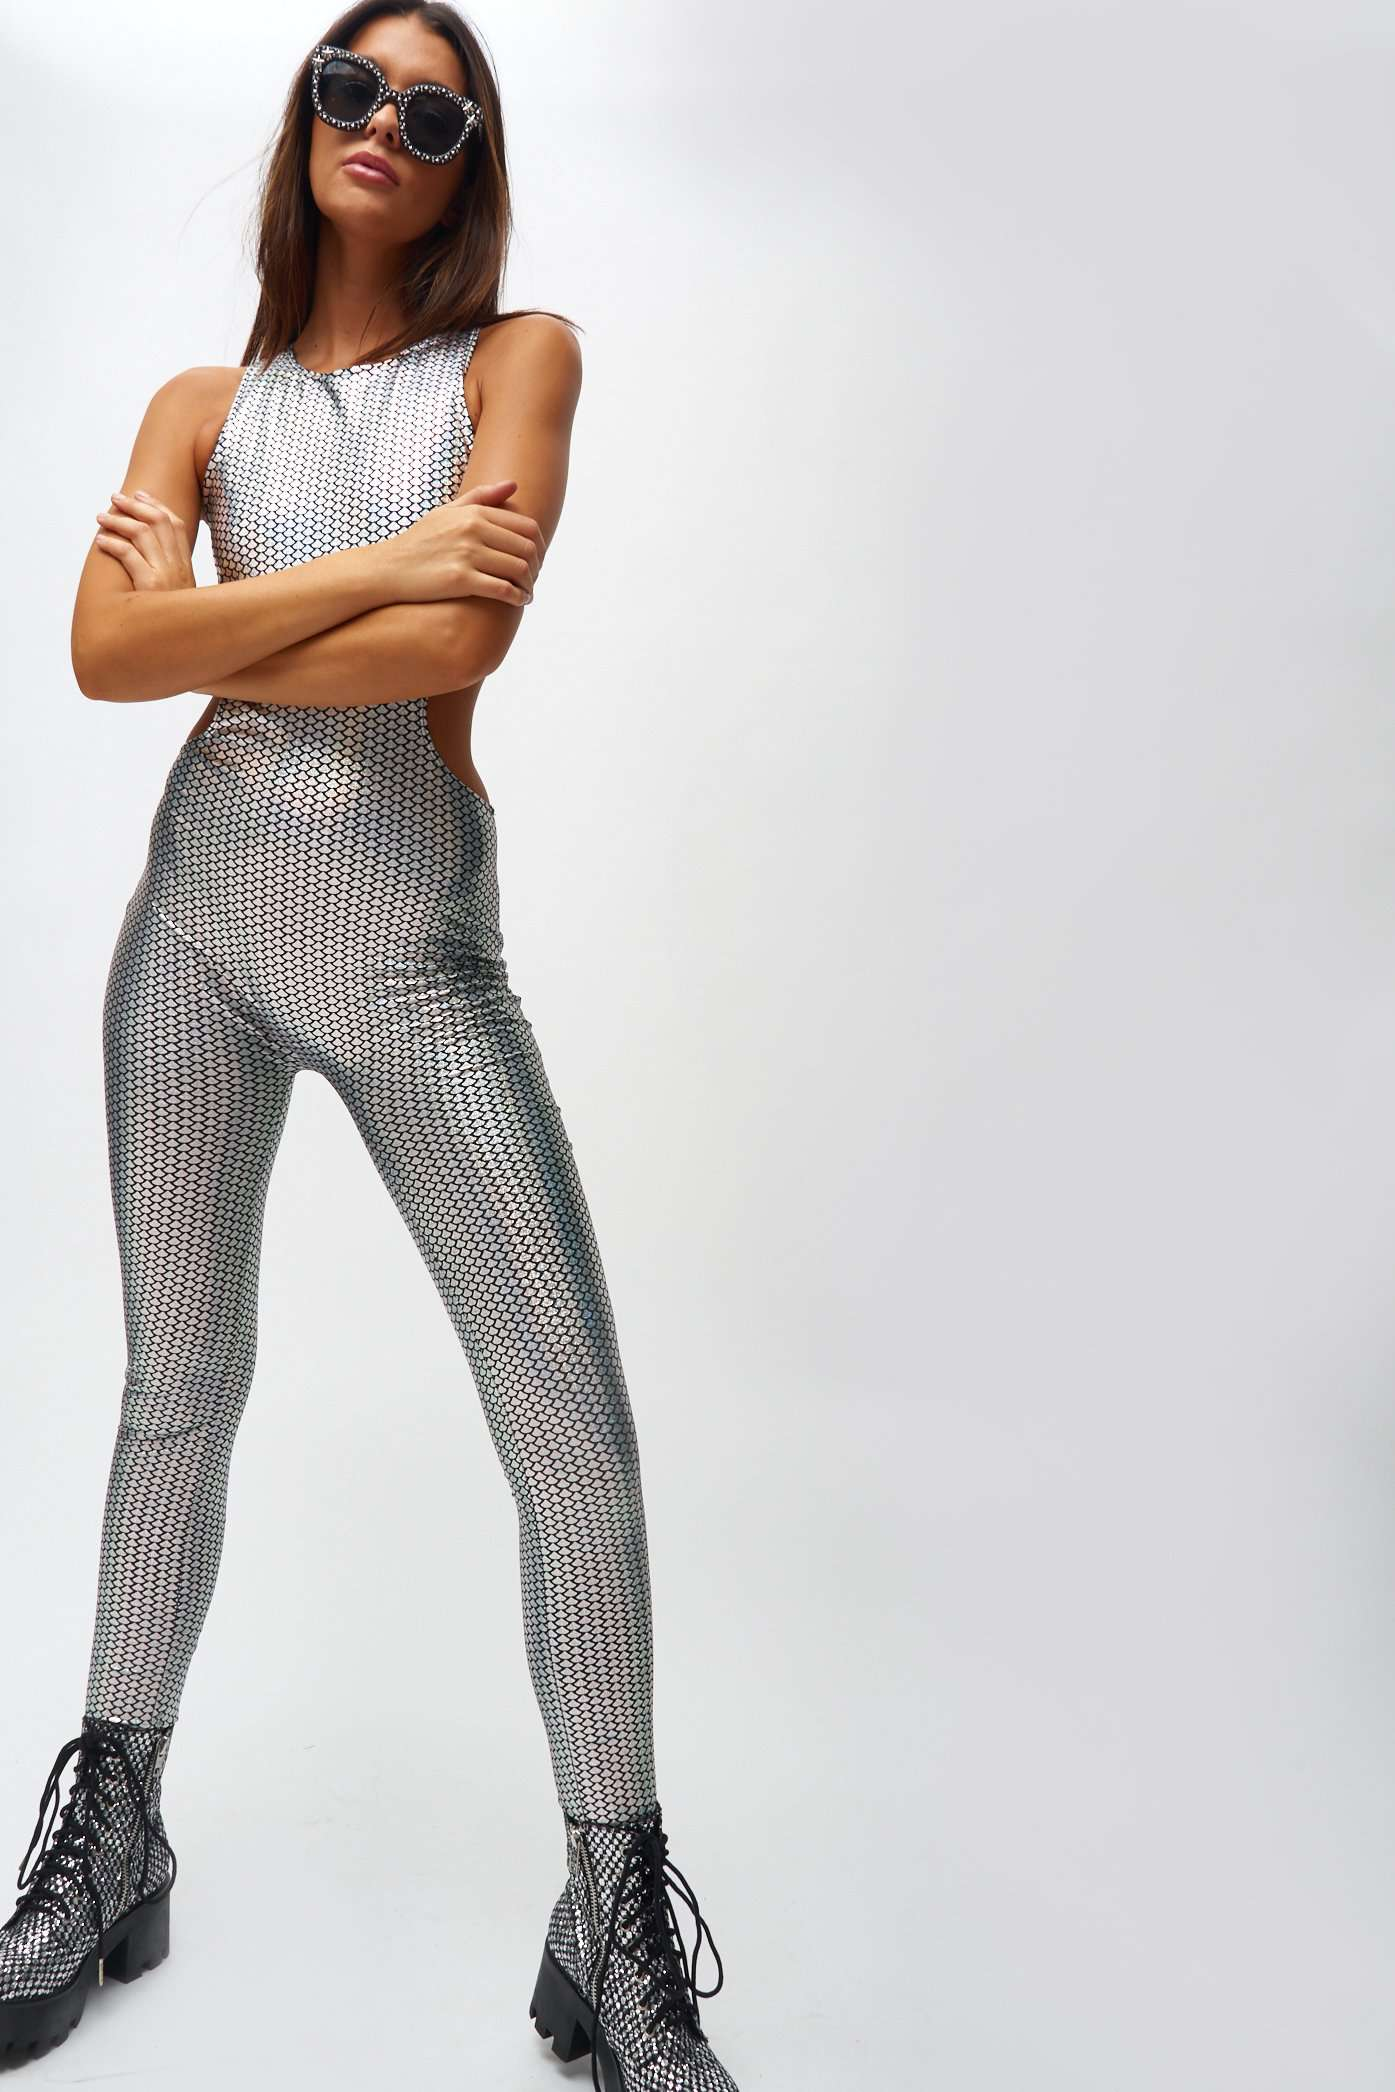 Holographic Mermaid Cut Out Catsuit